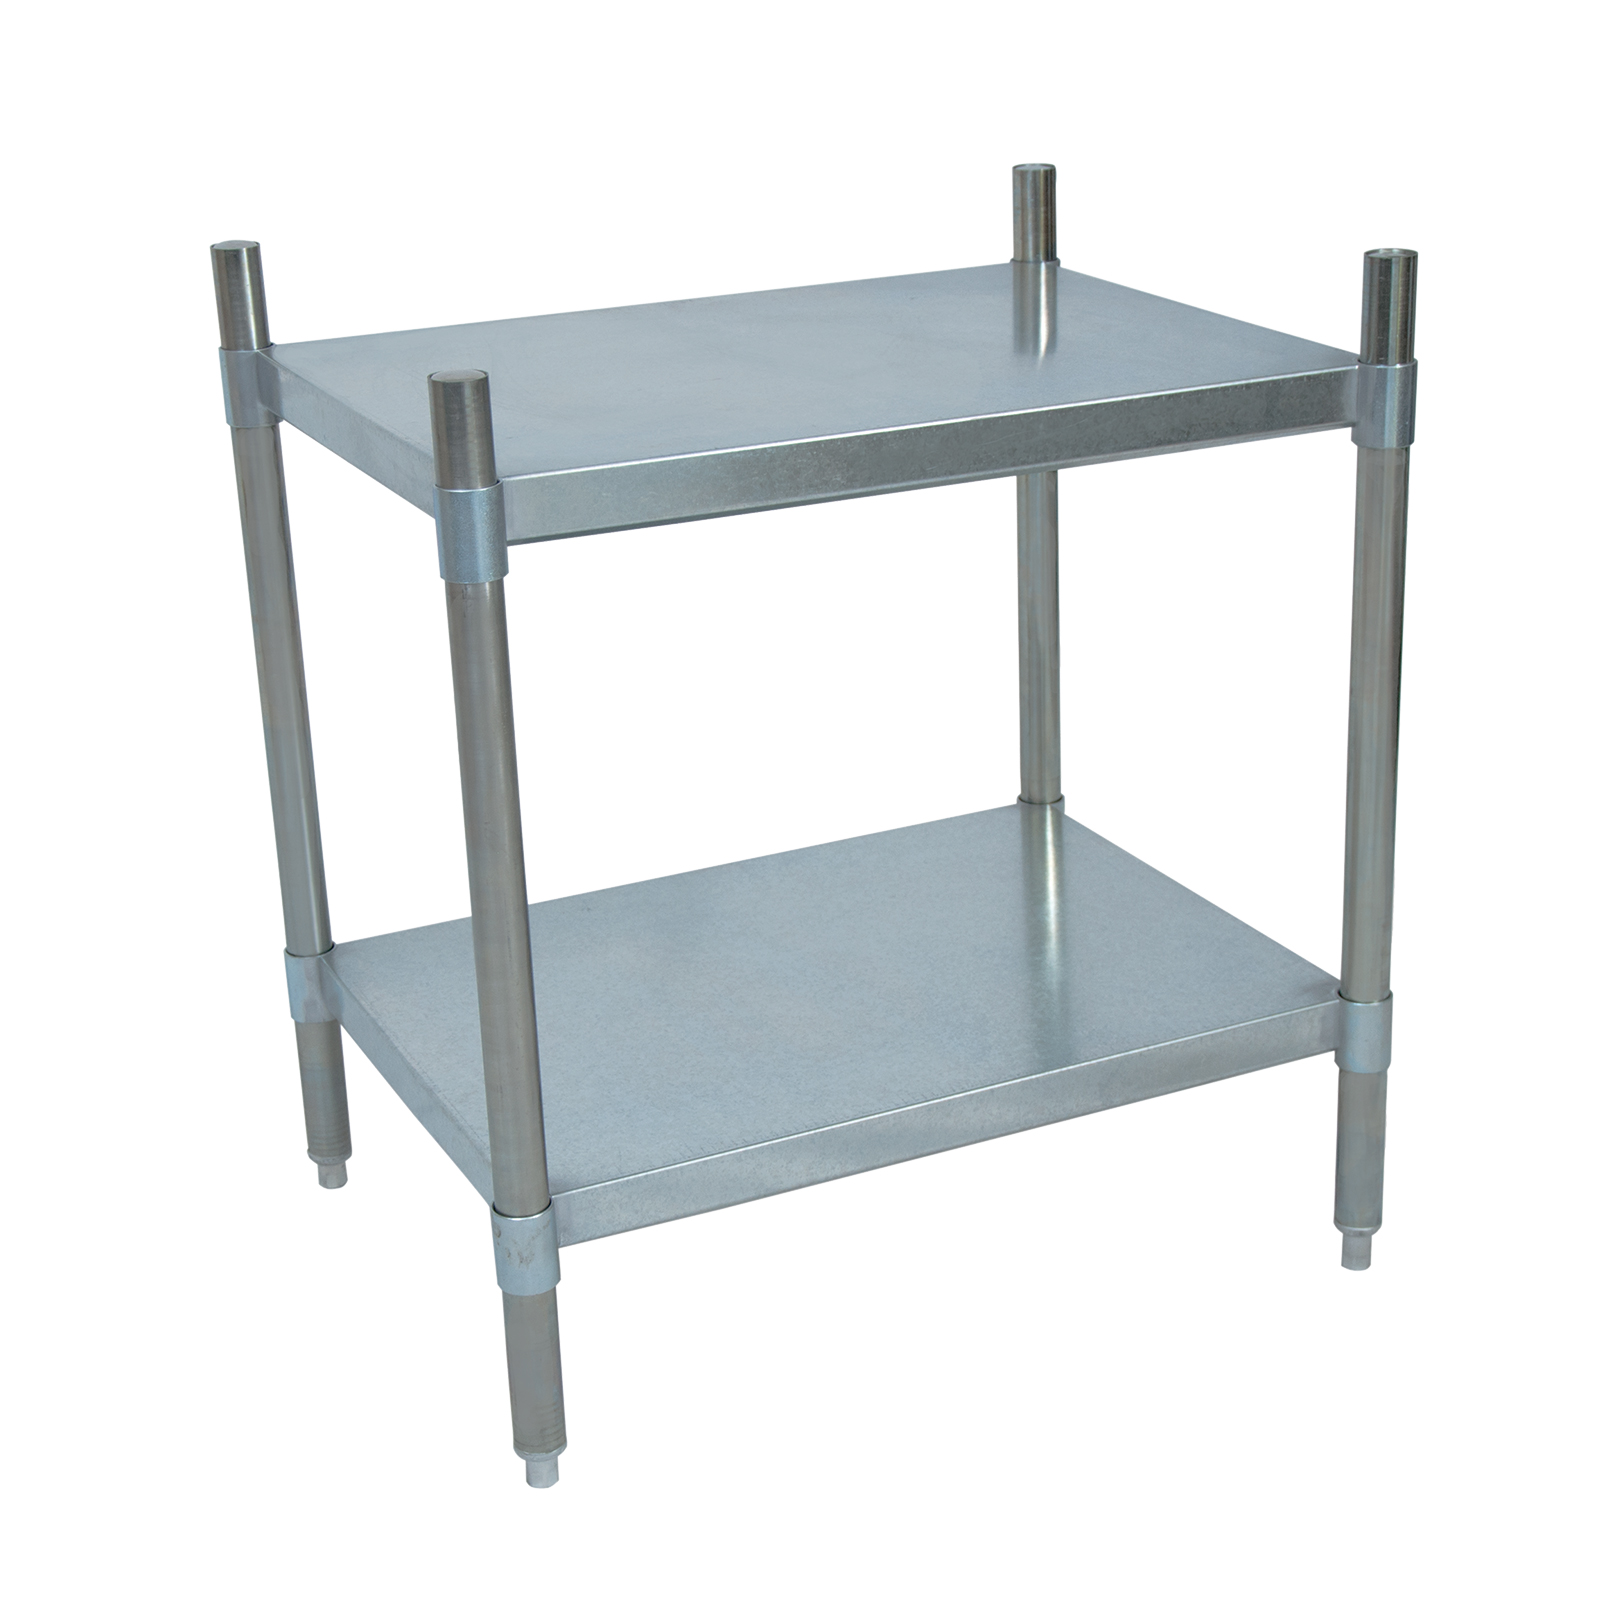 BK Resources SSU3-4324 shelving unit, solid flat